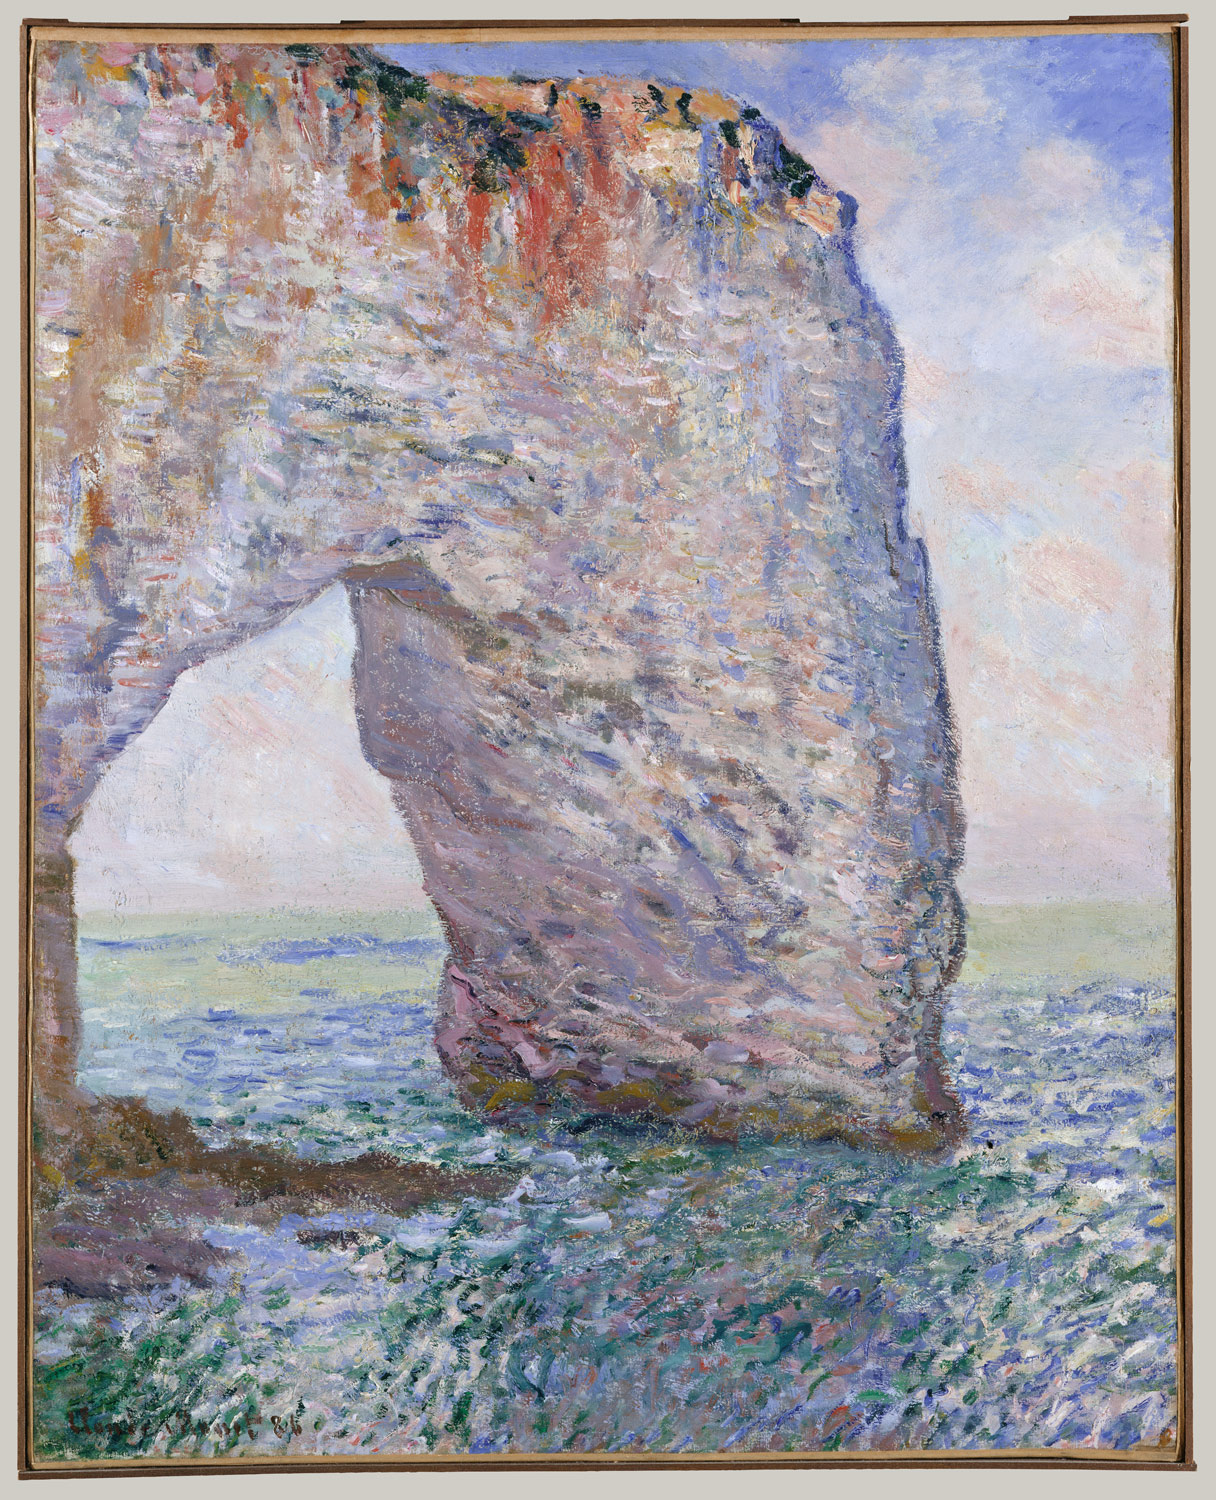 claude monet 1840 1926 essay heilbrunn timeline of art the manneporte near eacutetretat